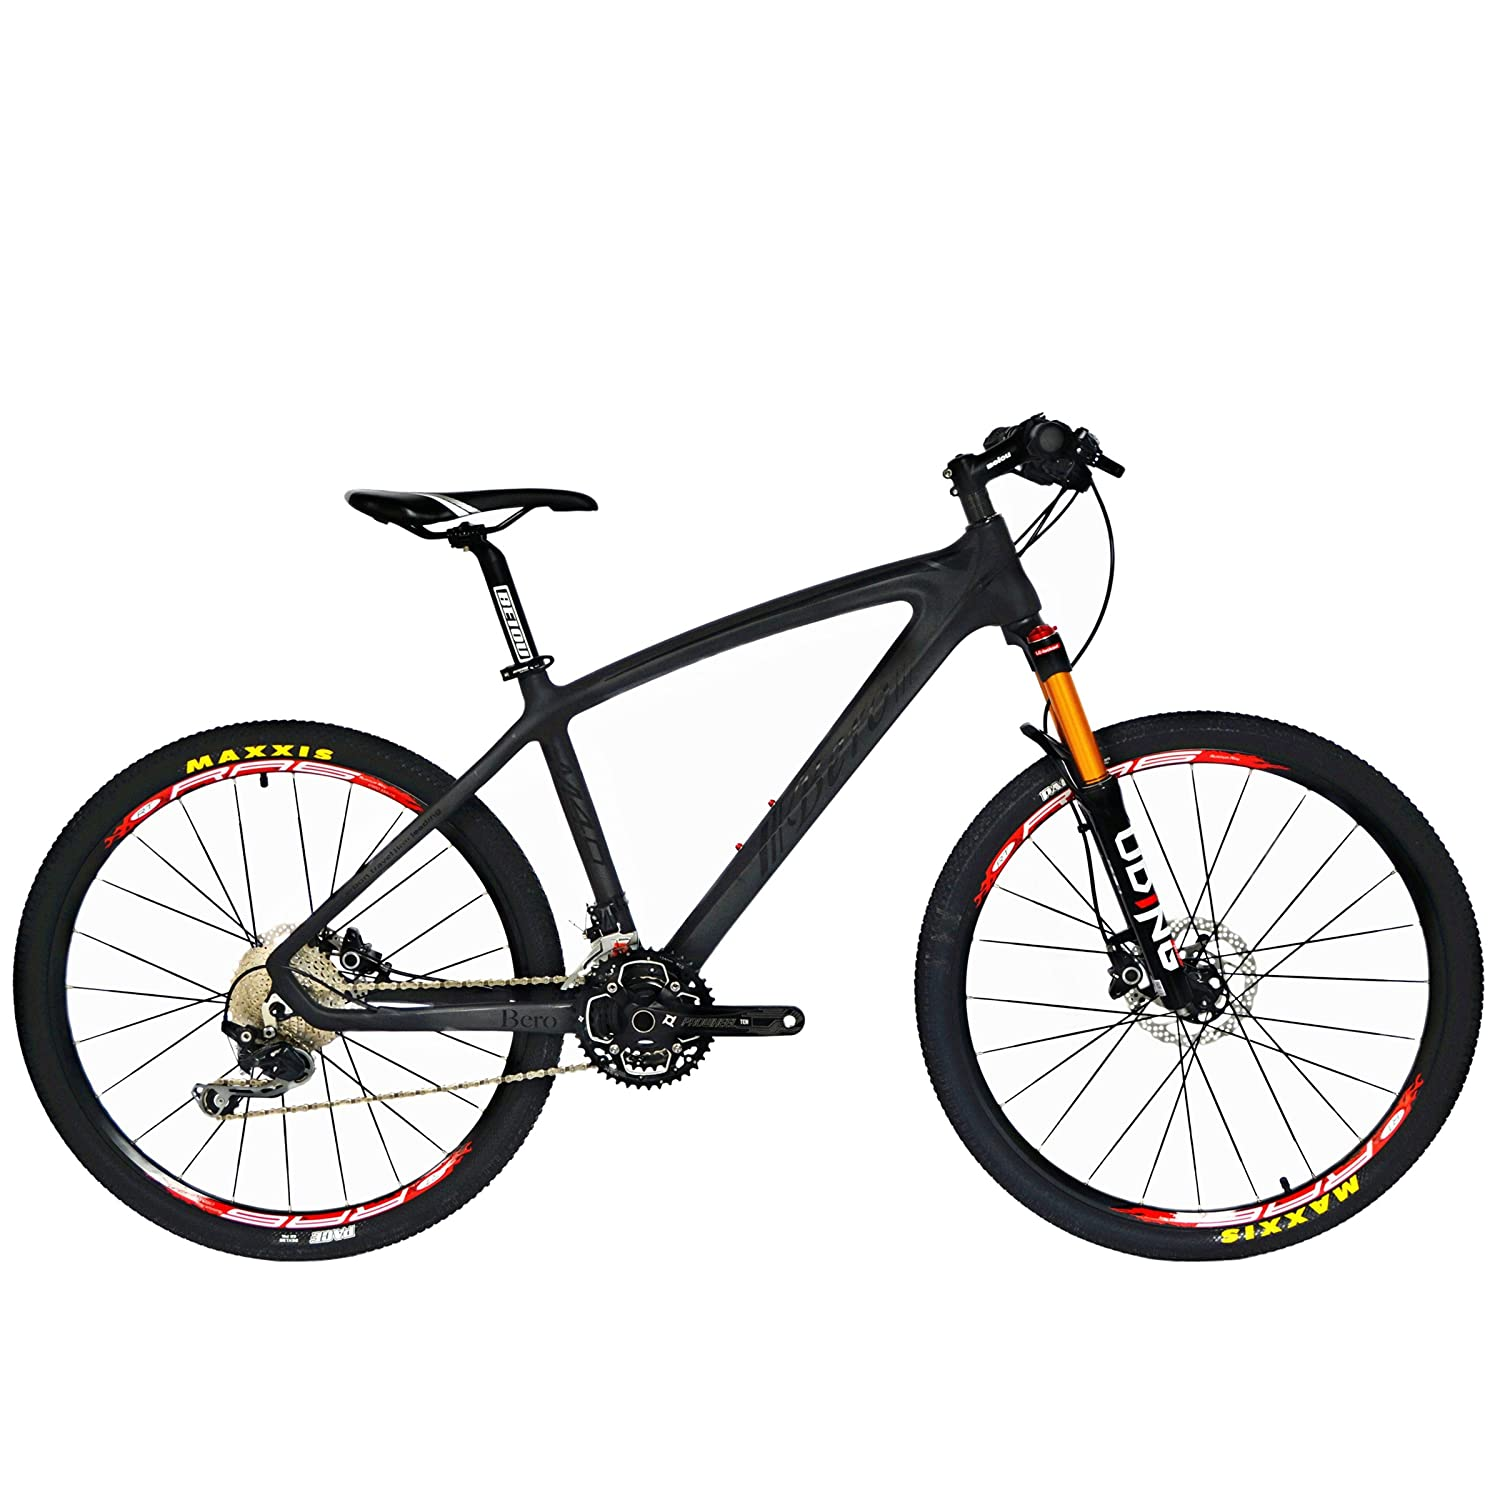 BEIOU Carbon Fiber Mountain Bike Hardtail MTB